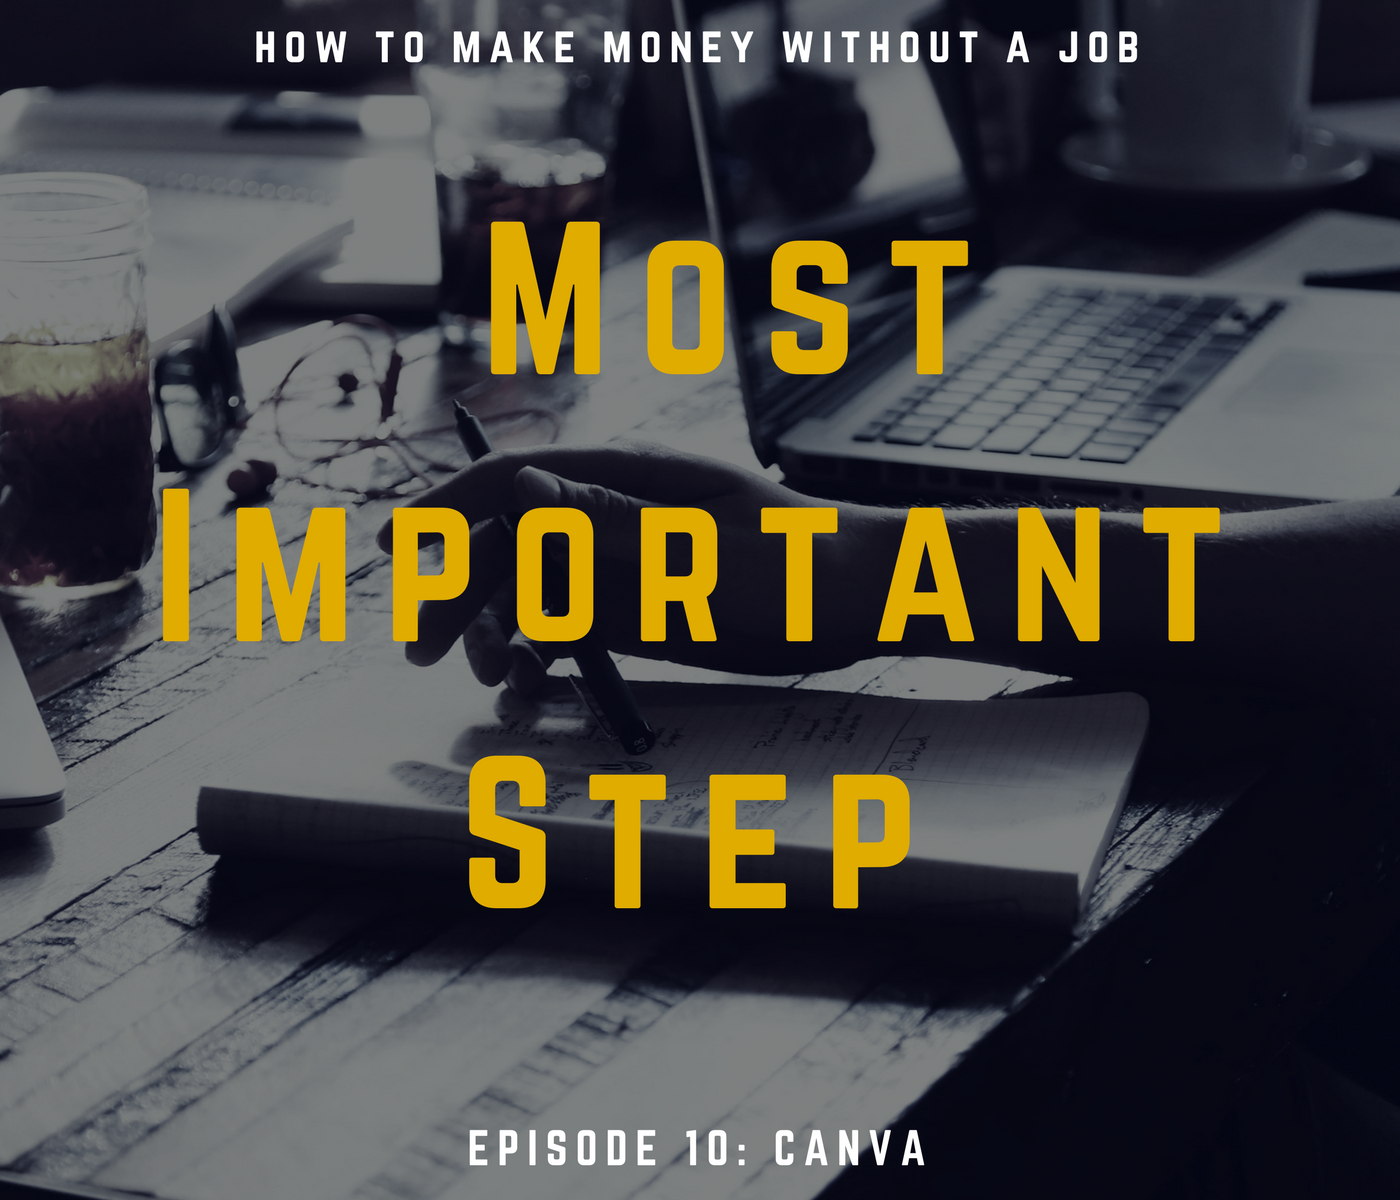 How to Make Money without a Job - The Most Important Step